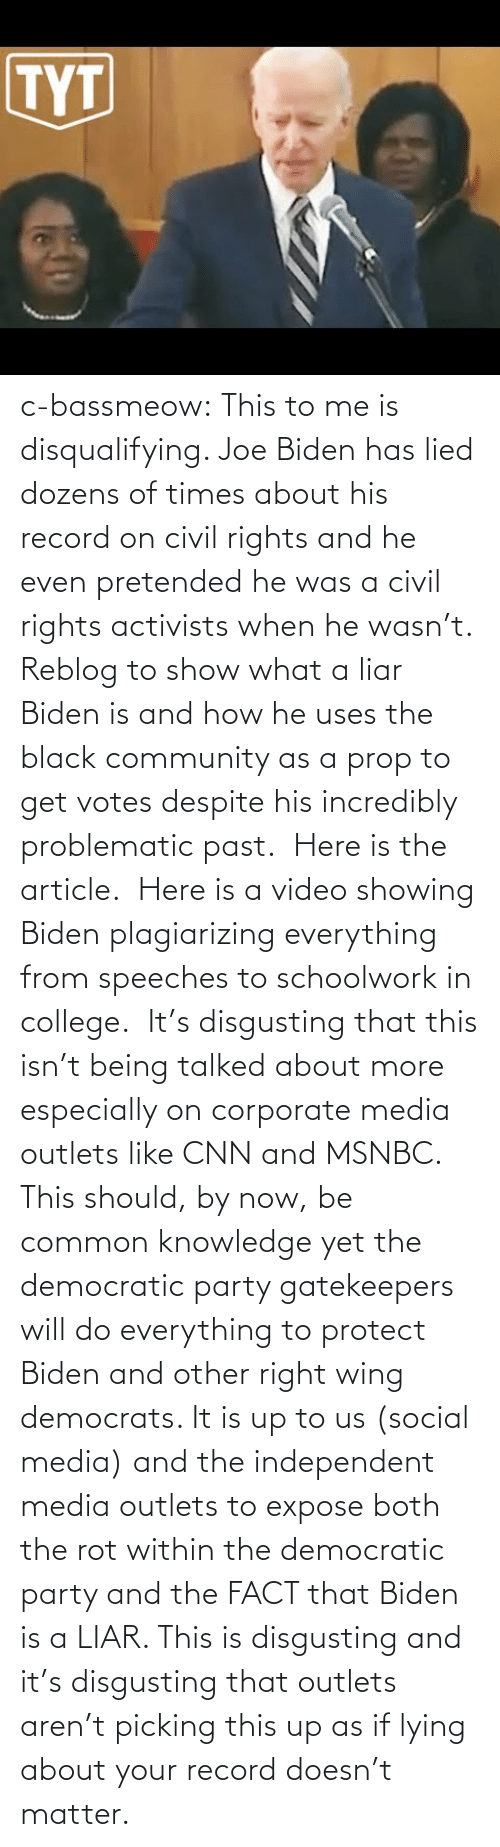 Lying: c-bassmeow: This to me is disqualifying. Joe Biden has lied dozens of times about his record on civil rights and he even pretended he was a civil rights activists when he wasn't. Reblog to show what a liar Biden is and how he uses the black community as a prop to get votes despite his incredibly problematic past.   Here is the article.   Here is a video showing Biden plagiarizing everything from speeches to schoolwork in college.   It's disgusting that this isn't being talked about more especially on corporate media outlets like CNN and MSNBC. This should, by now, be common knowledge yet the democratic party gatekeepers will do everything to protect Biden and other right wing democrats. It is up to us (social media) and the independent media outlets to expose both the rot within the democratic party and the FACT that Biden is a LIAR. This is disgusting and it's disgusting that outlets aren't picking this up as if lying about your record doesn't matter.